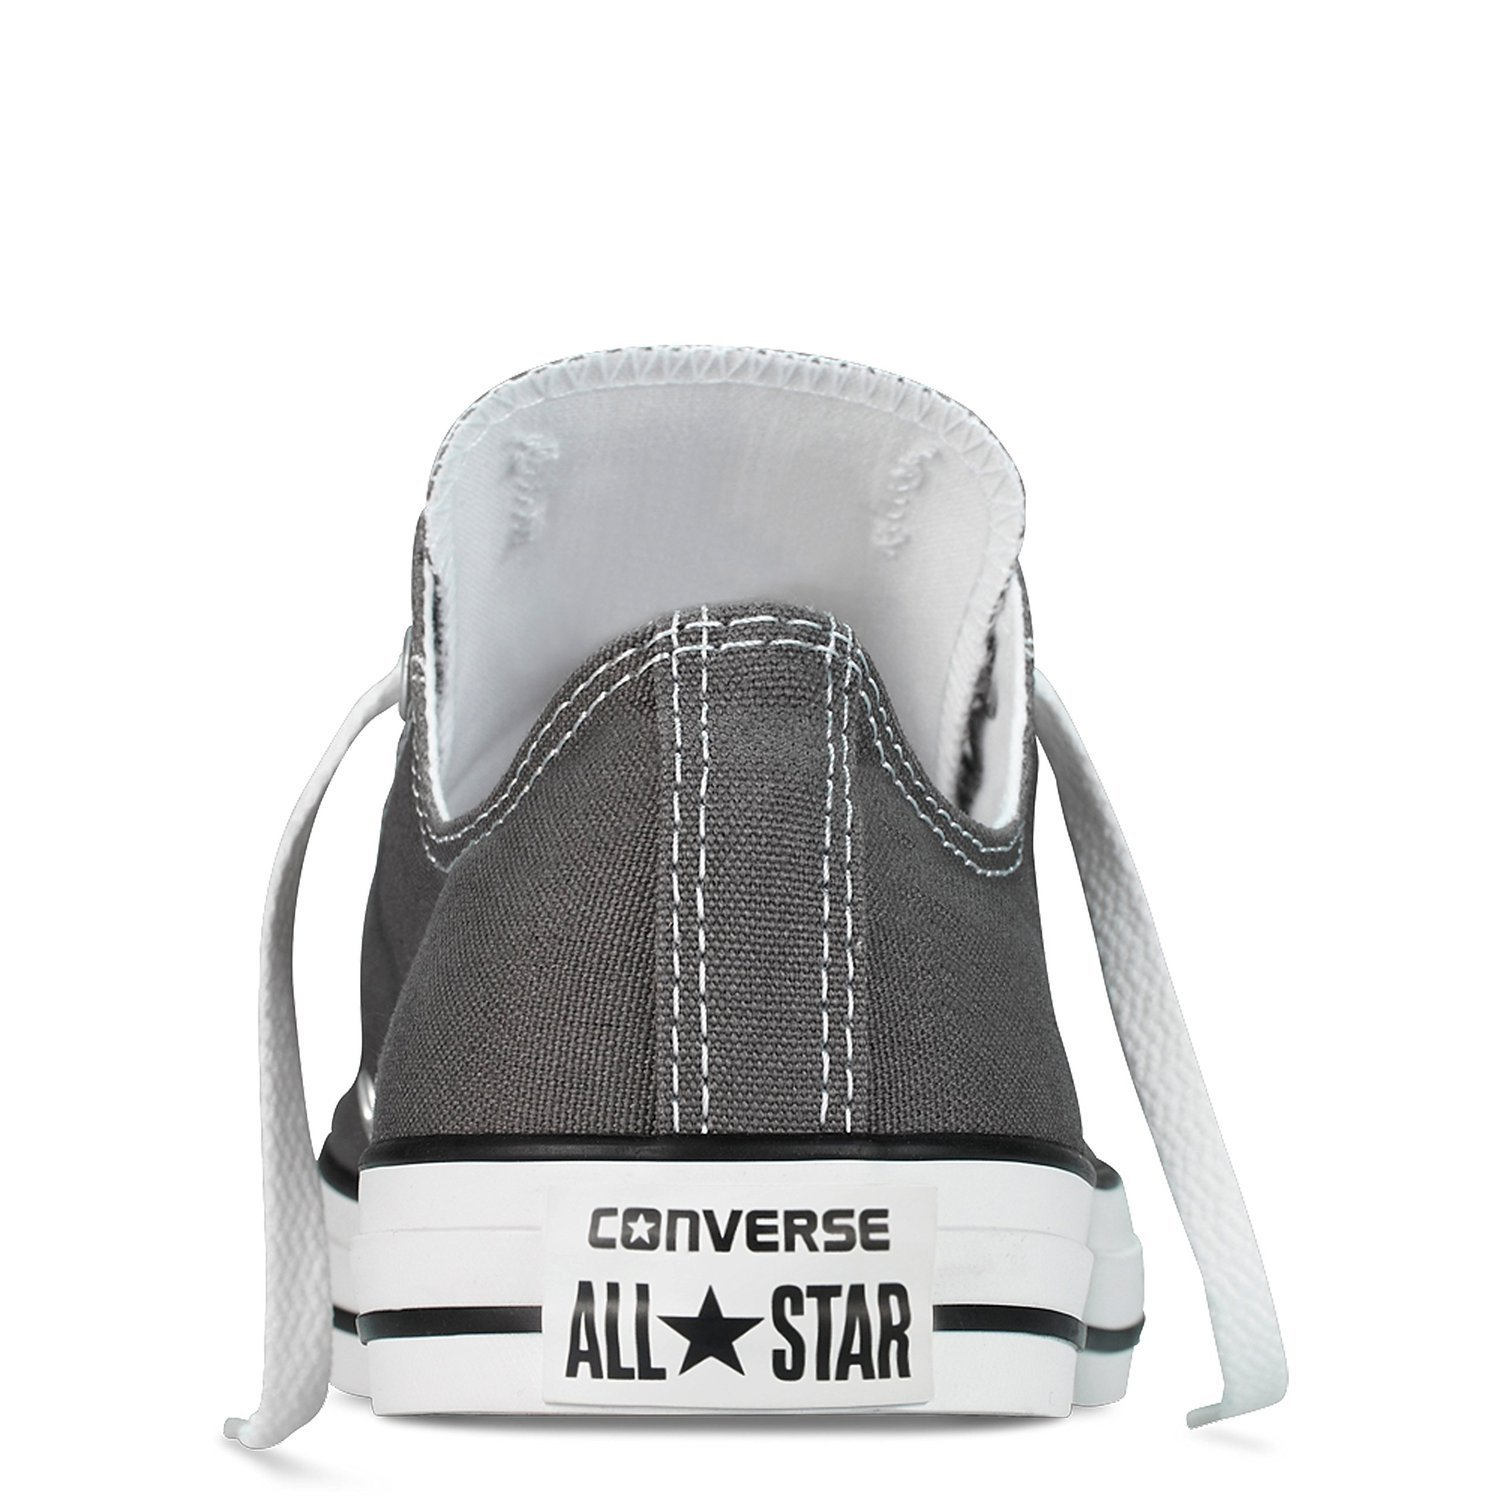 Converse Chuck Taylor All Star Slip Sneaker Gray 1X228, Size 4 Mens, 6 Womens by Converse (Image #4)